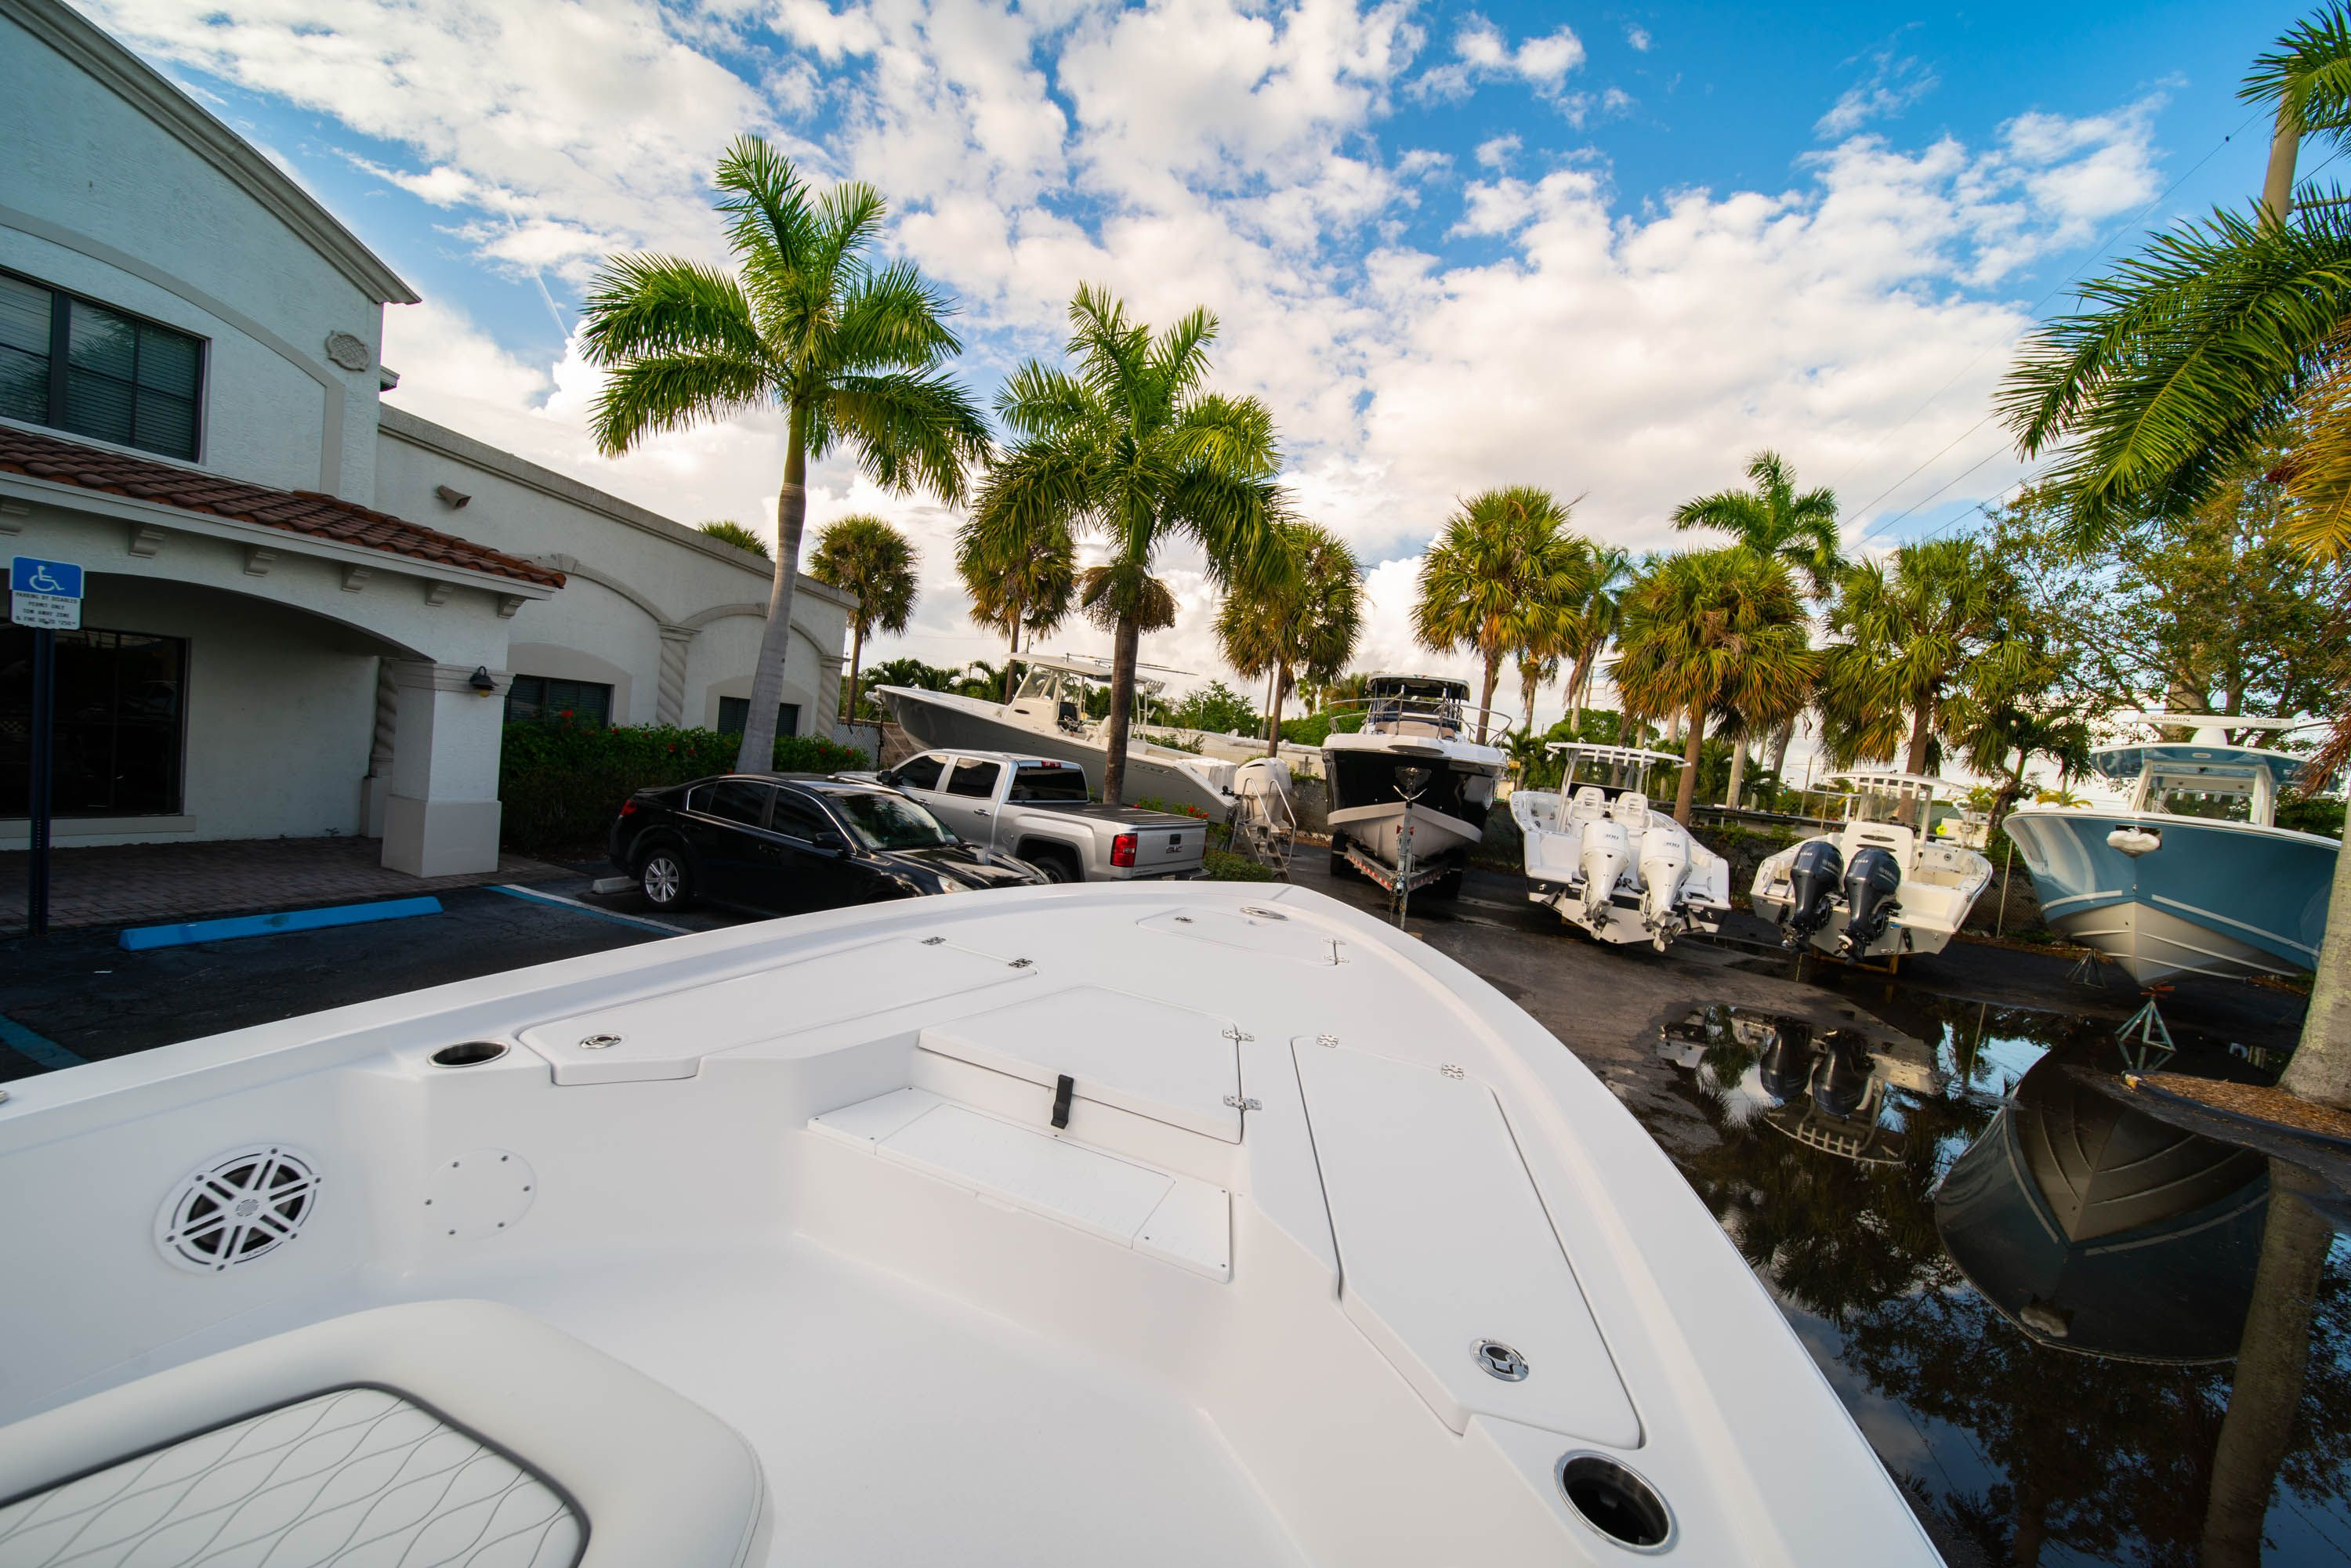 Thumbnail 27 for New 2020 Sportsman Tournament 214 Bay Boat boat for sale in West Palm Beach, FL